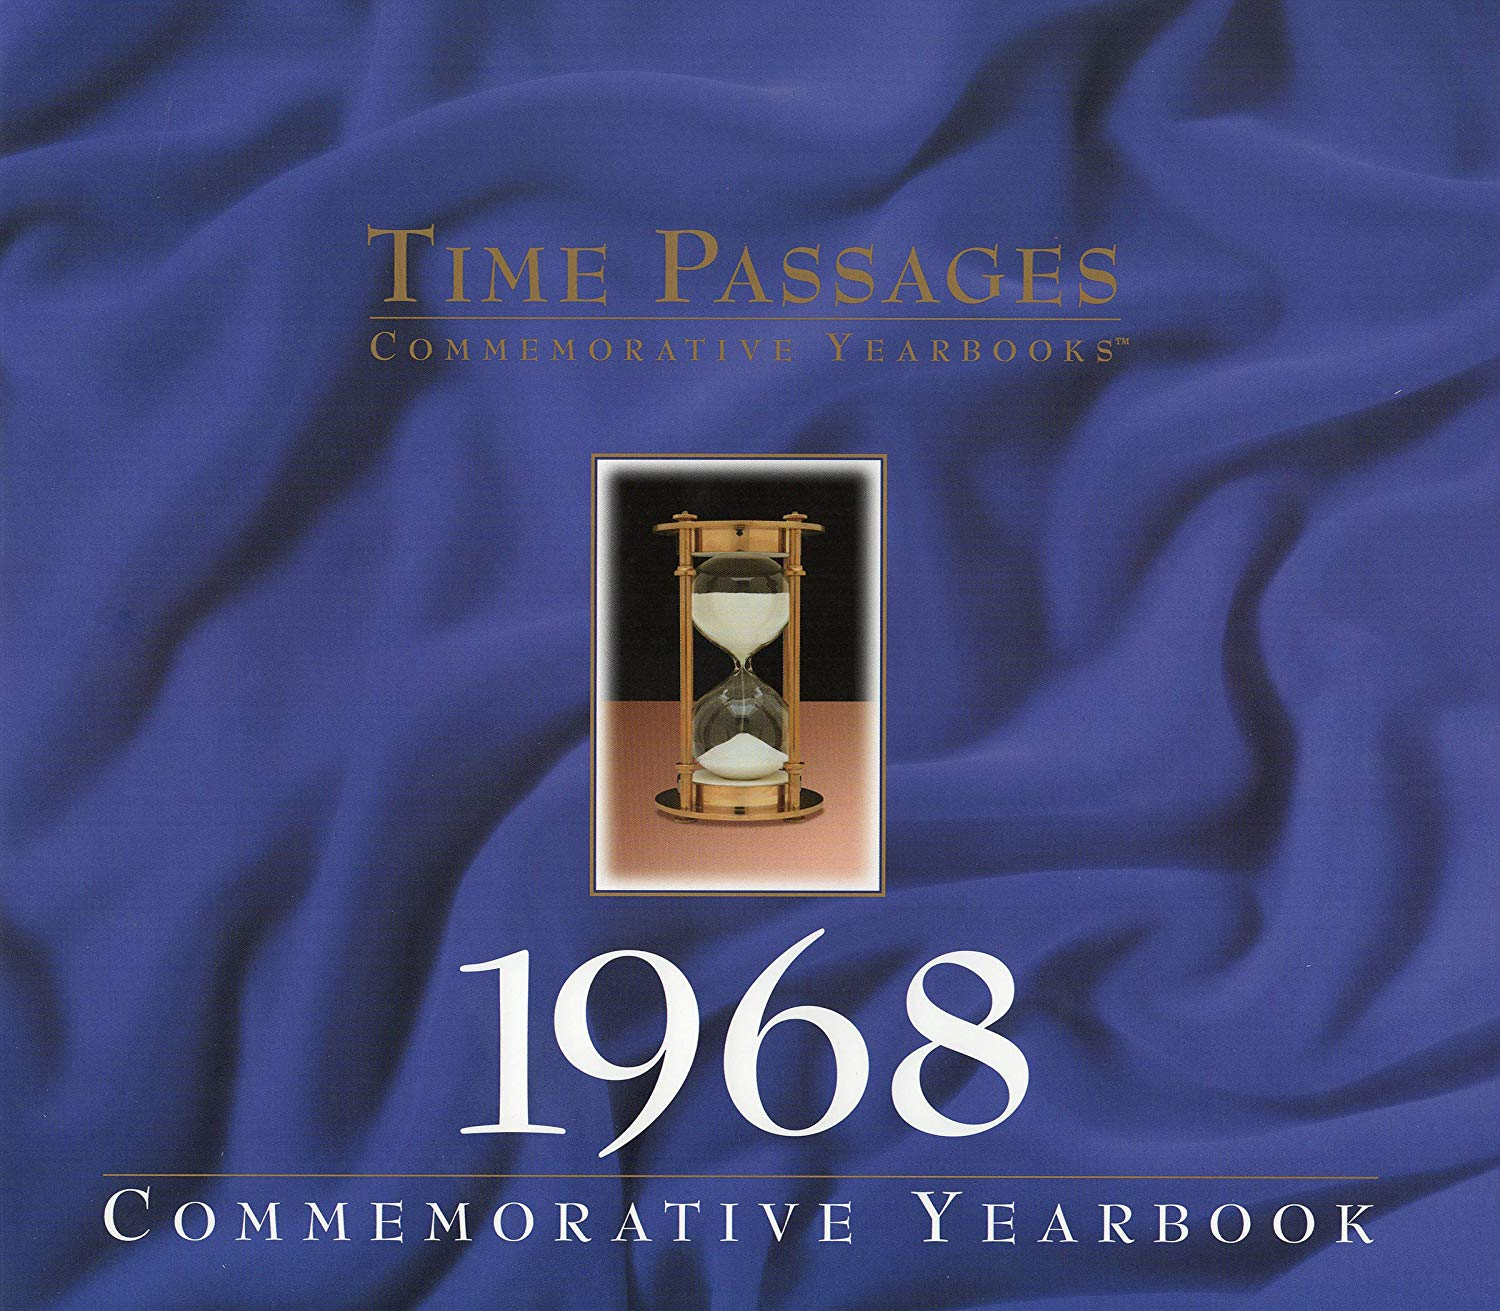 1968 Time Passages Yearbook for 50th Birthday Gift, 50th Anniversary Gift